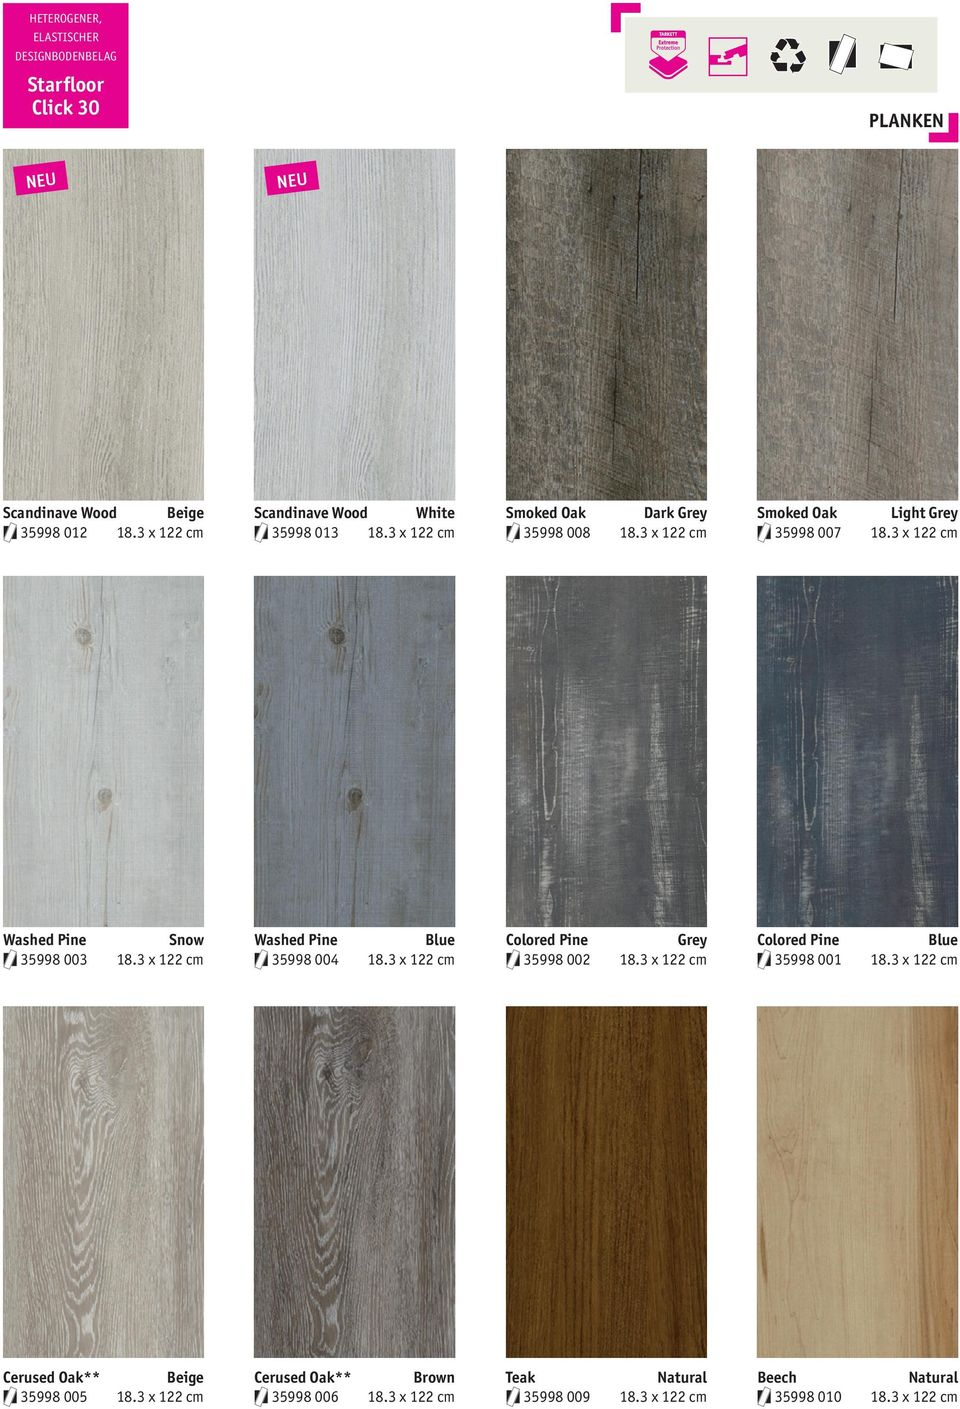 3 x 122 cm Washed Pine Blue 35998 004 18.3 x 122 cm Colored Pine Grey 35998 002 18.3 x 122 cm Colored Pine Blue 35998 001 18.